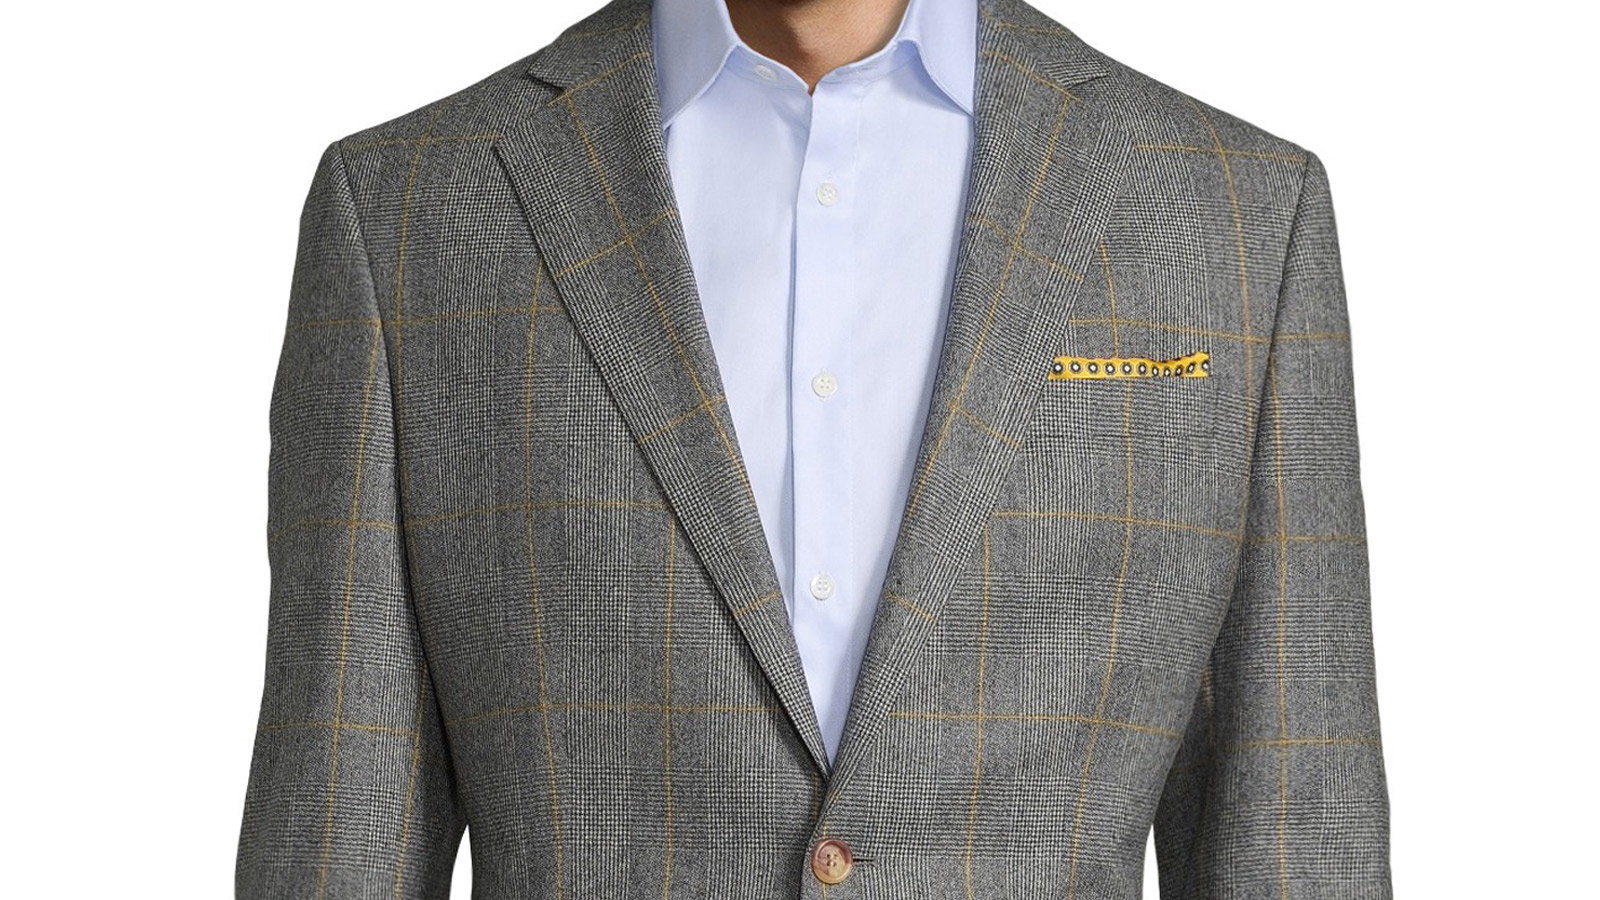 Grey Plaid With Yellow Overcheck Suit - slider image 1